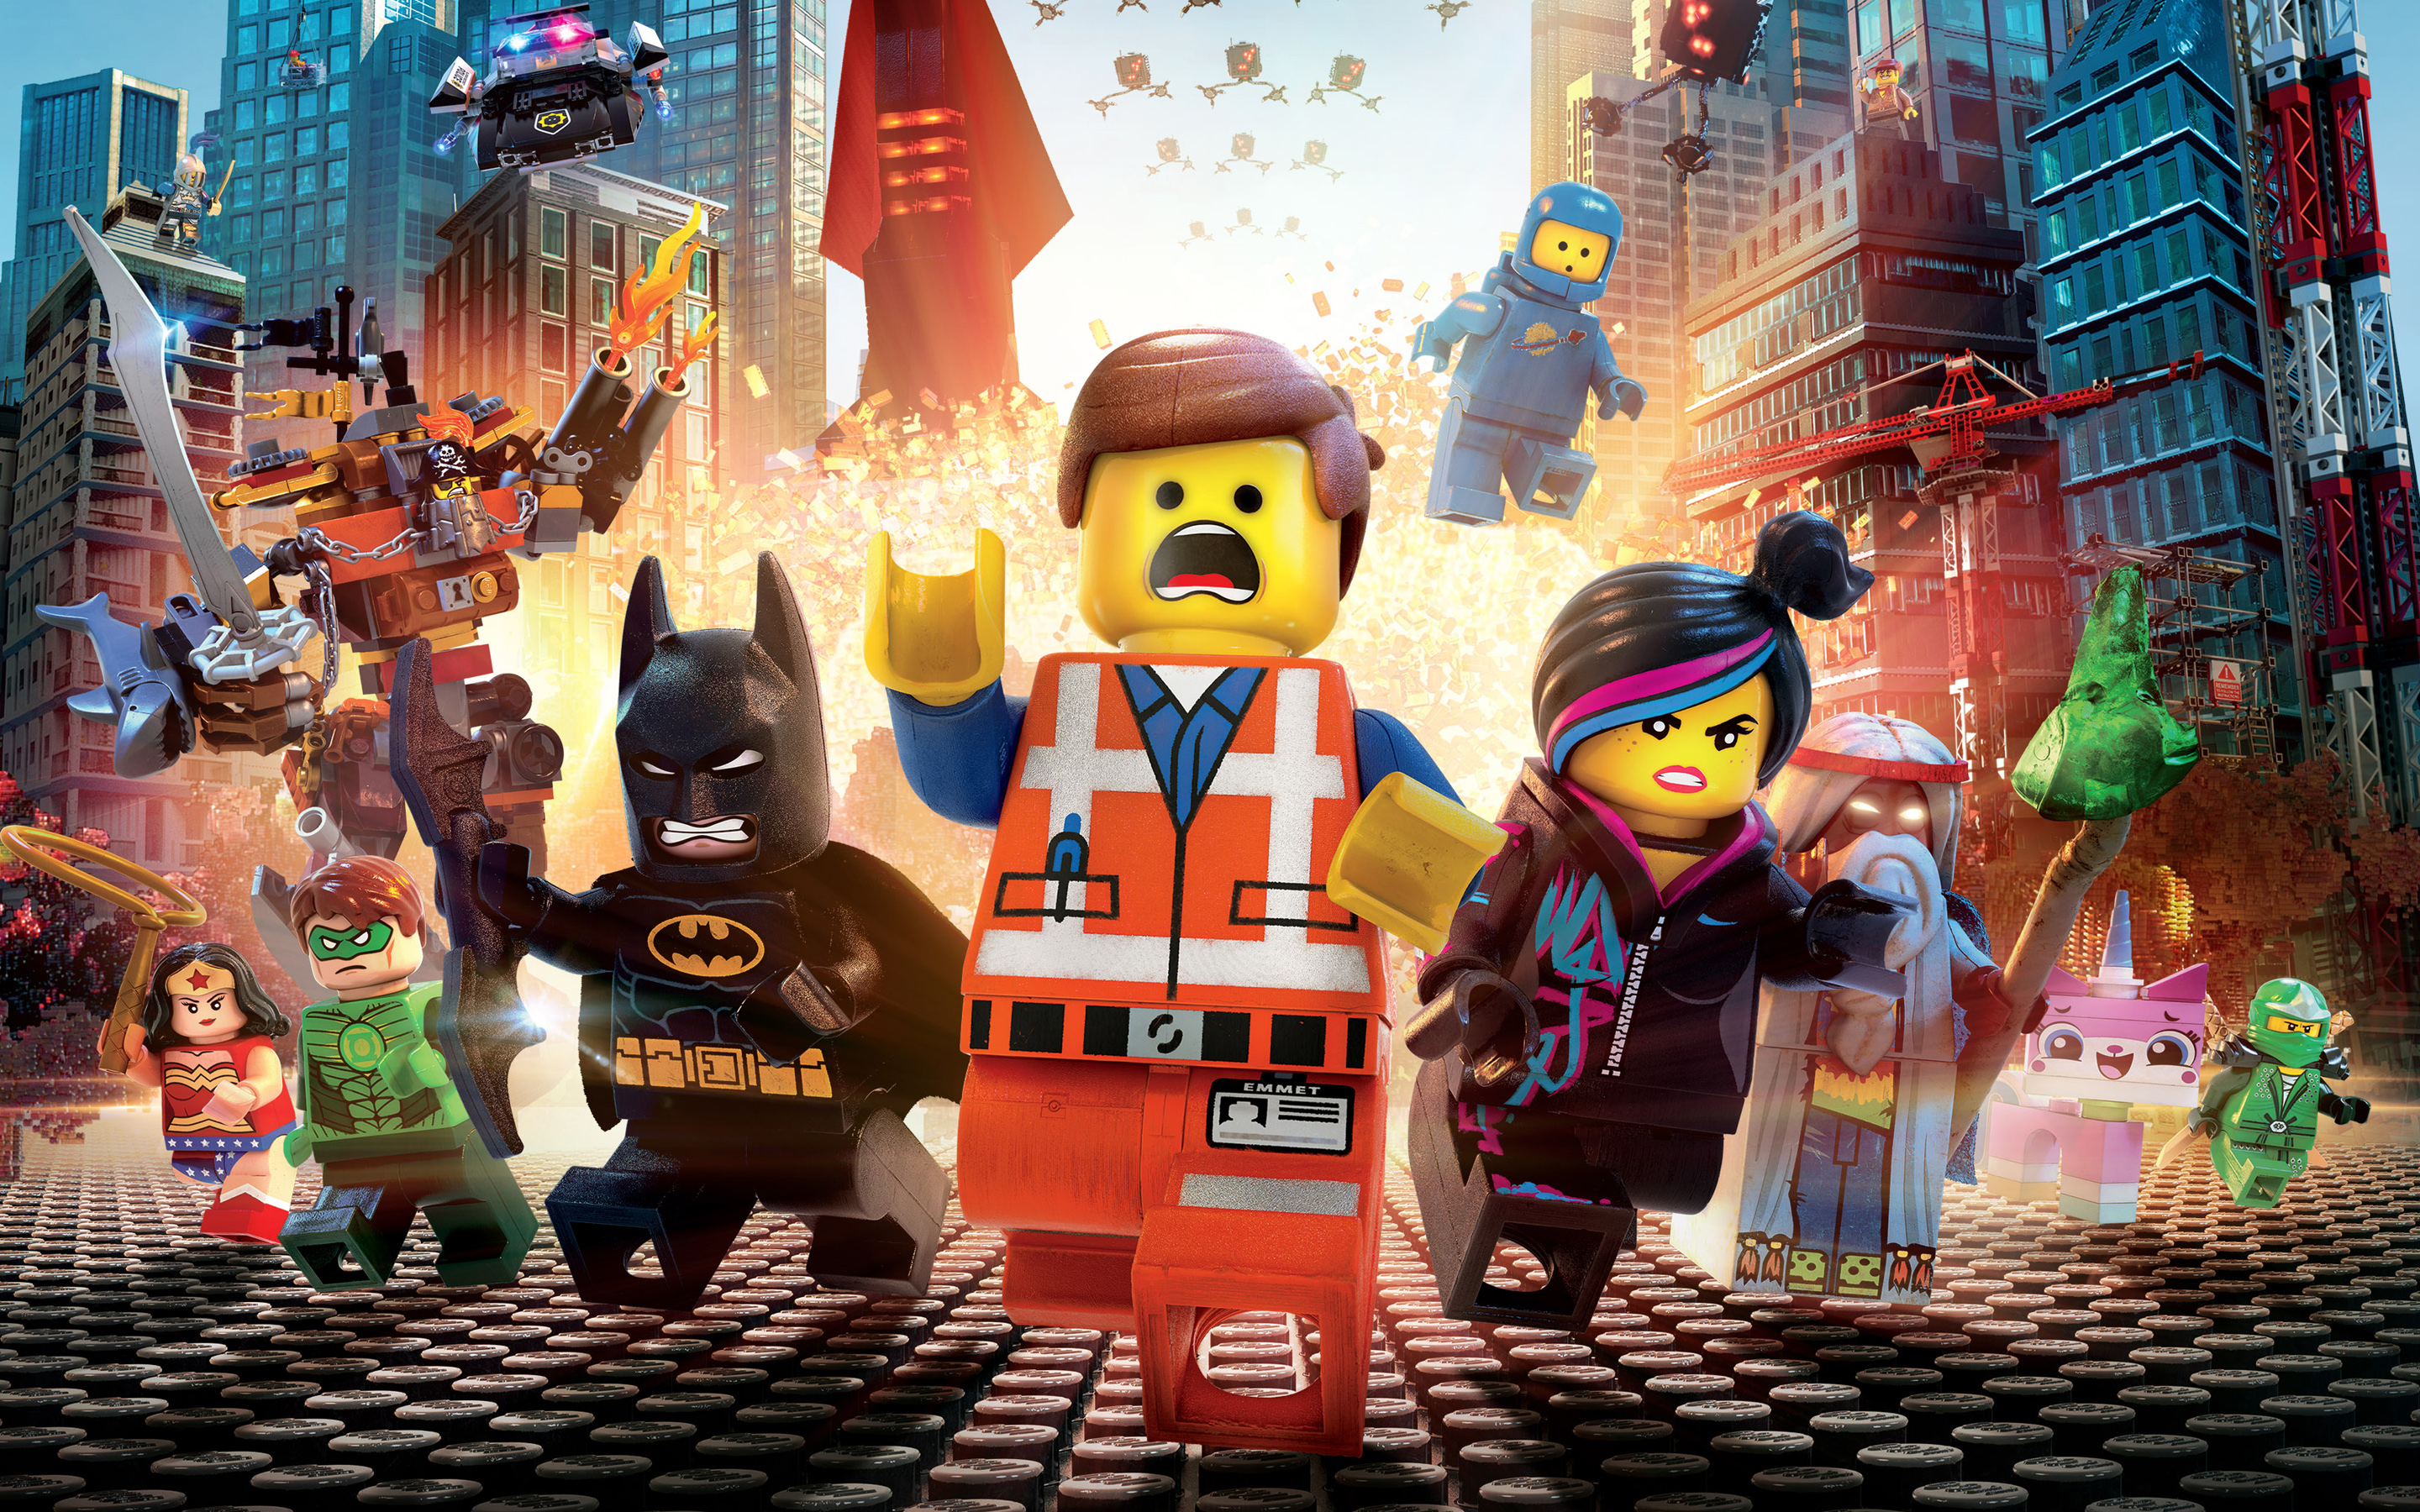 hinh_anh_the_lego_movie__82